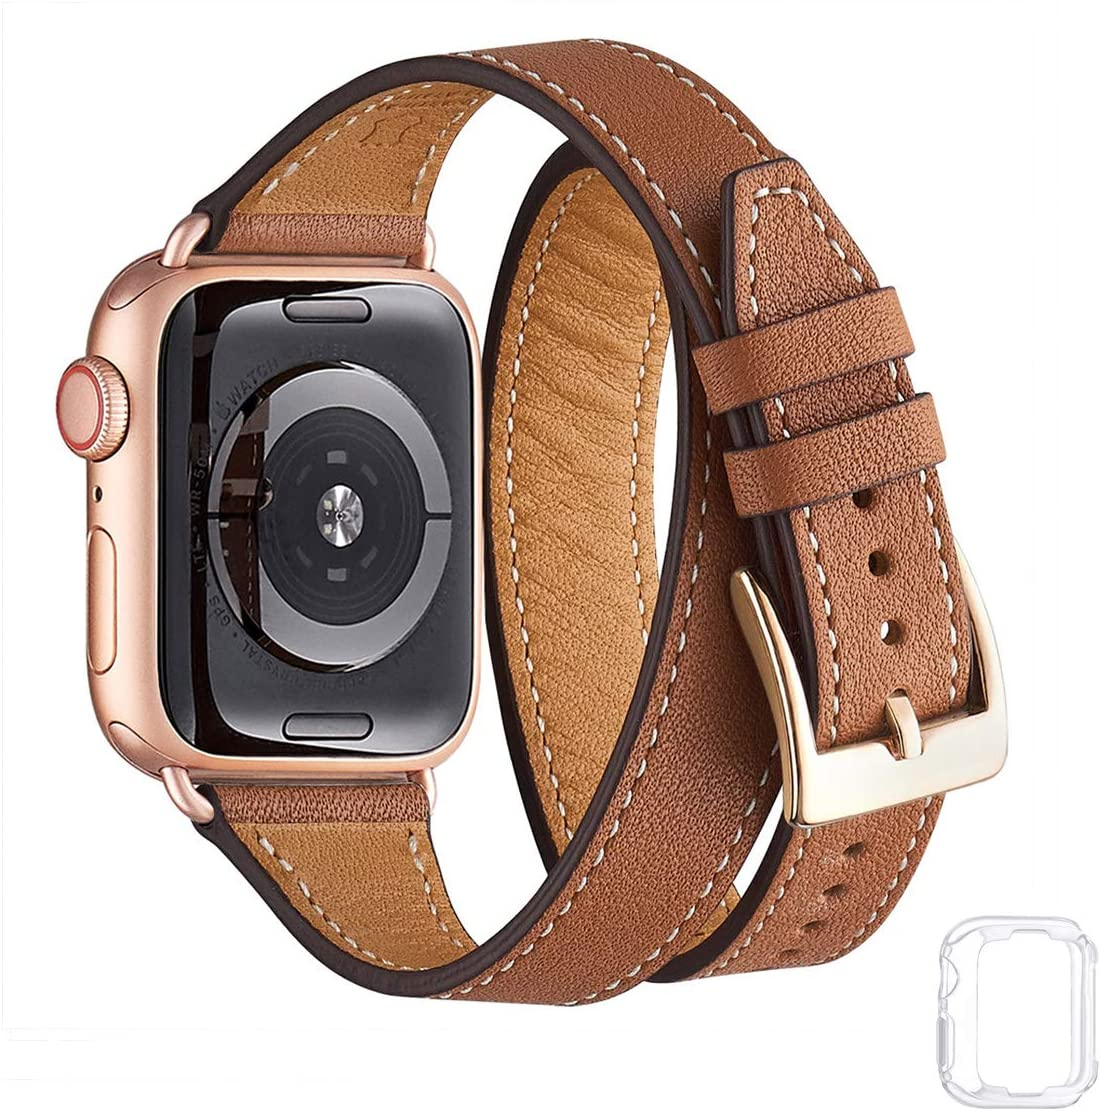 Bestig Band Compatible for Apple Watch 38mm 40mm 42mm 44mm, Genuine Leather Double Tour Designed Slim Replacement iwatch Strap for iWatch Series 6 SE 5 4 3 2 1 (Brown Band+Rosegold Adapter, 42mm 44mm)